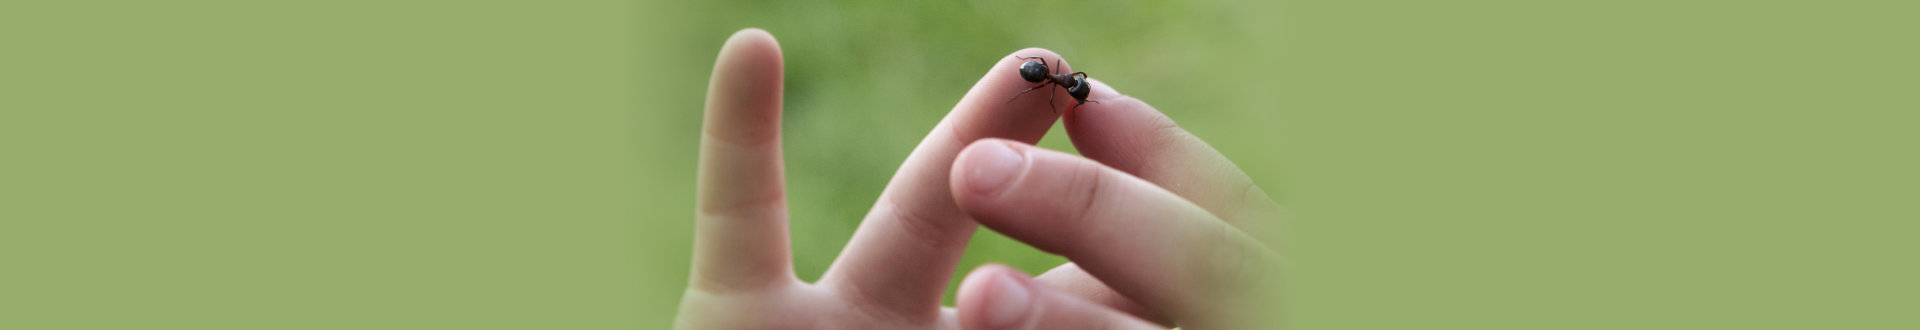 Closeup of Ant Crawling on Toddlers Hand